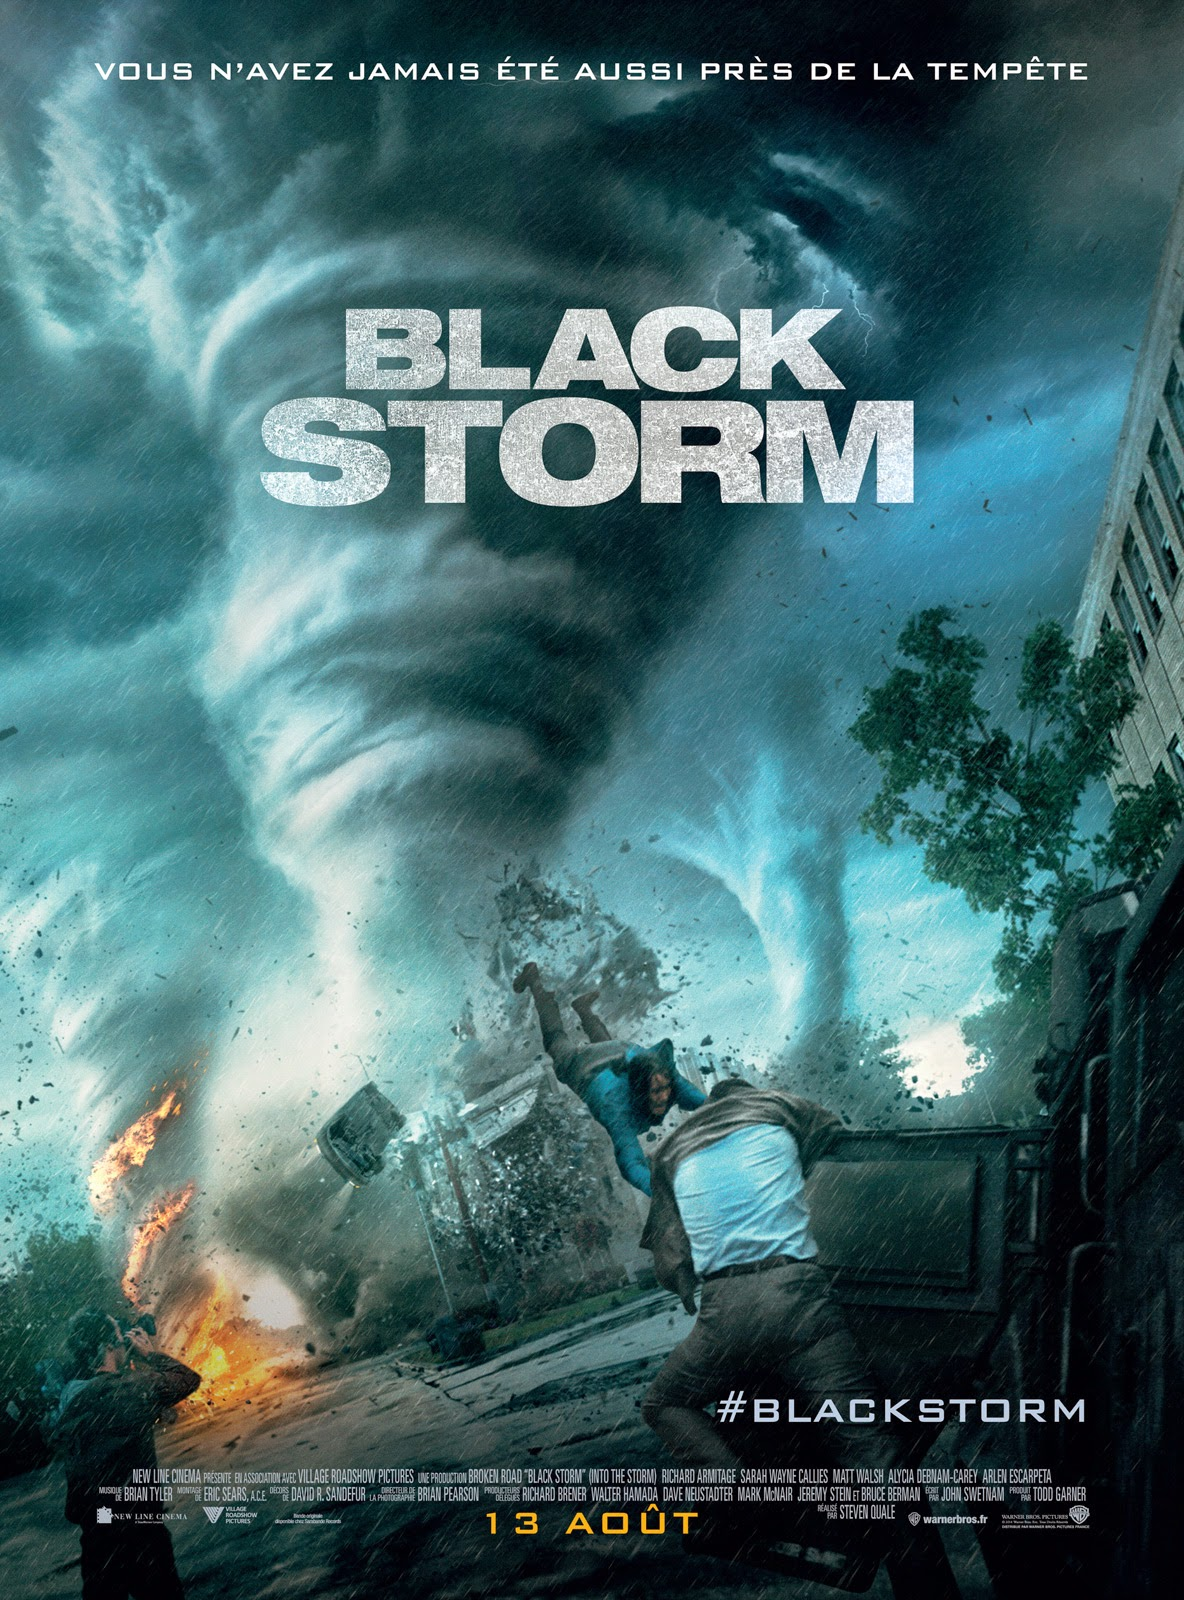 http://fuckingcinephiles.blogspot.fr/2014/08/critique-black-storm.html